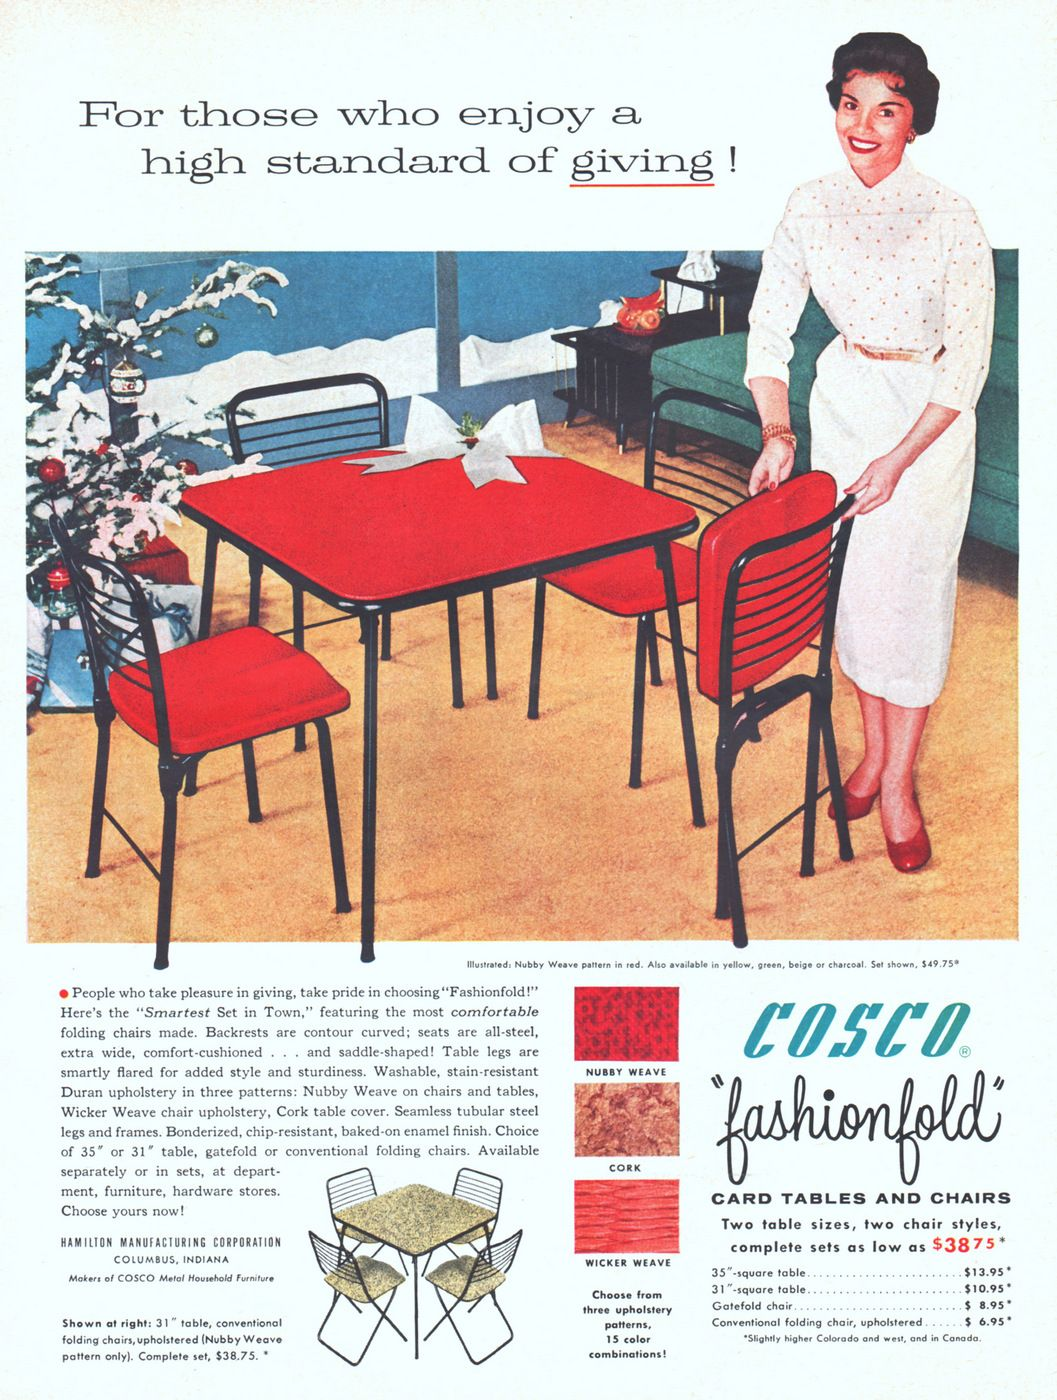 Folding Card Table Canada Cosco Card Tables And Chairs 1955 Ad Picture Cosco Heritage